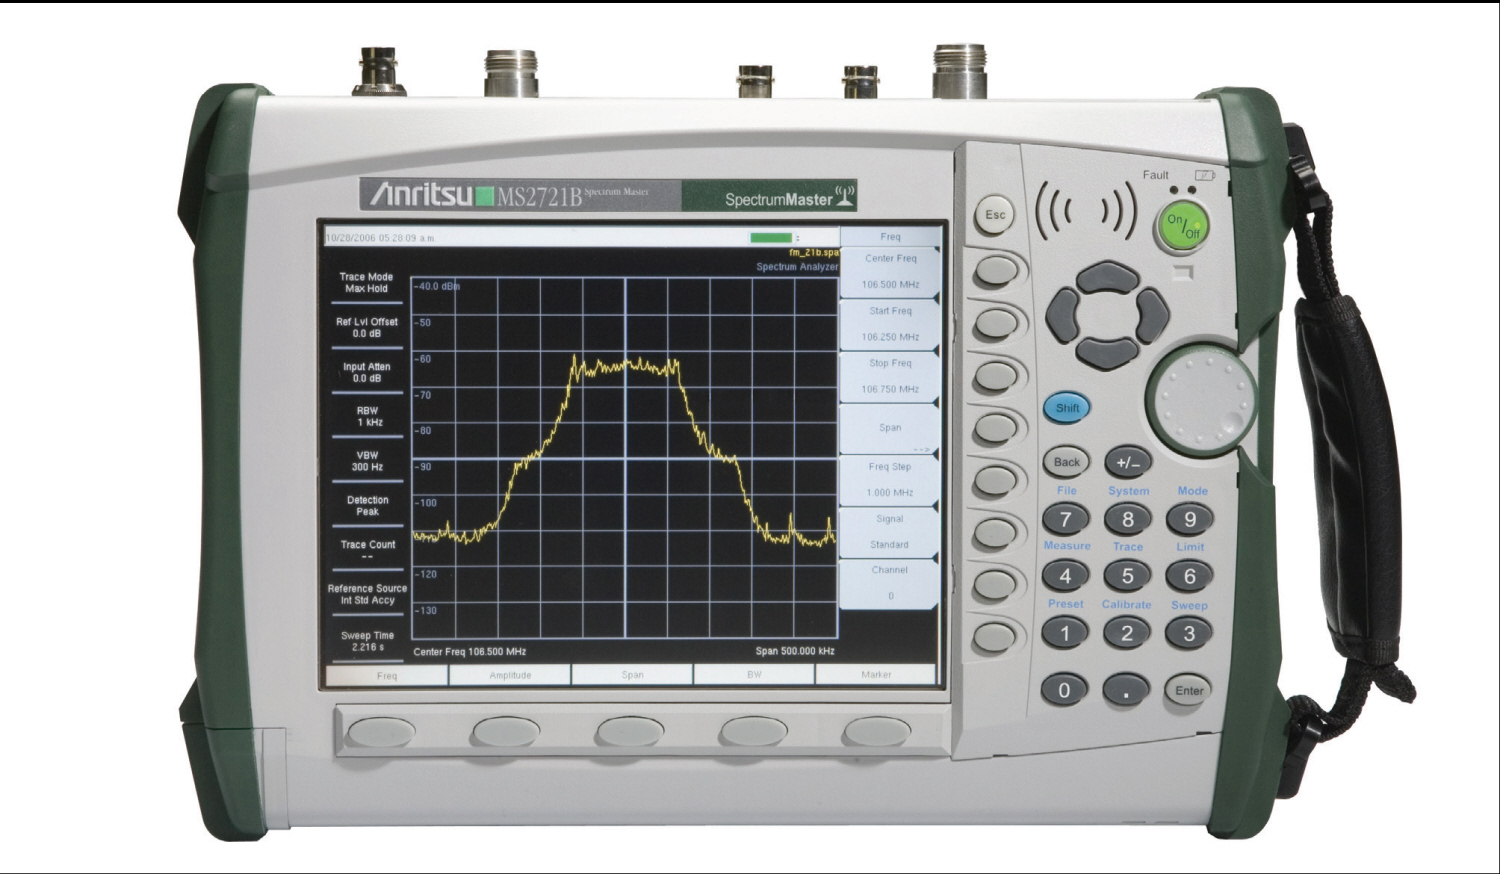 Anritsu MS2721B  just arrived